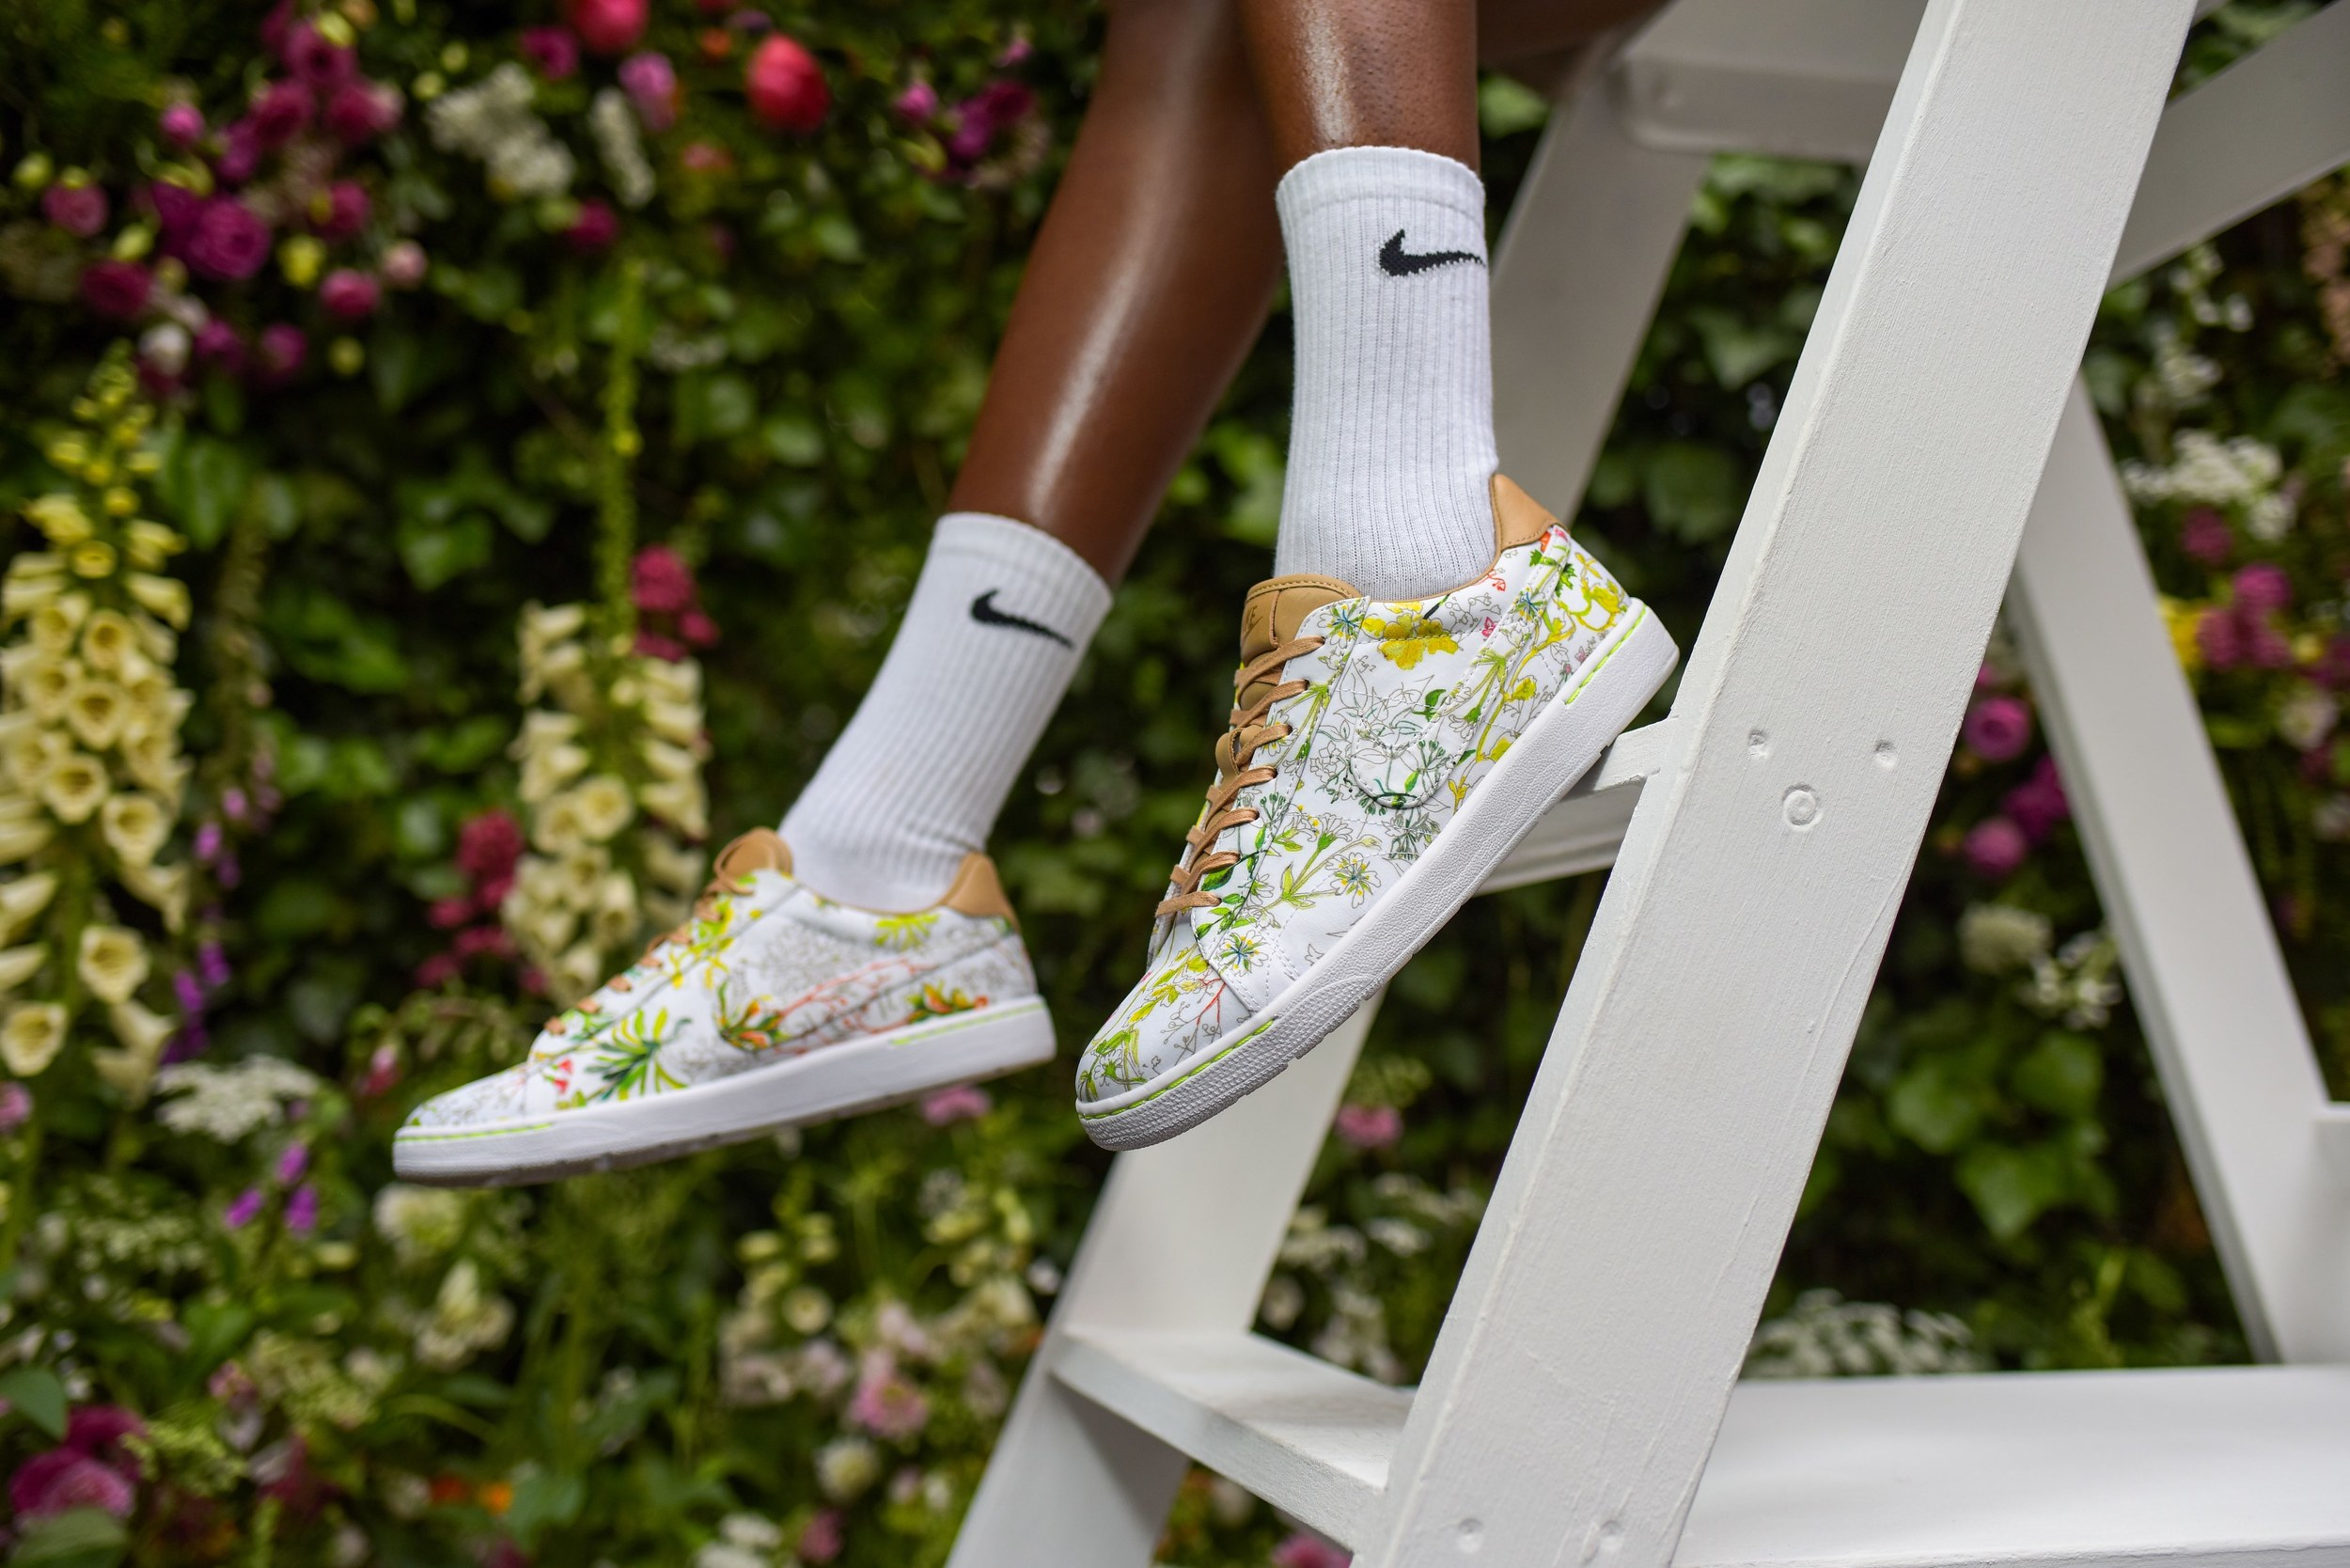 http://www.ludangelo.com/news-2/2014/6/15/nike-x-liberty-not-your-garden-variety